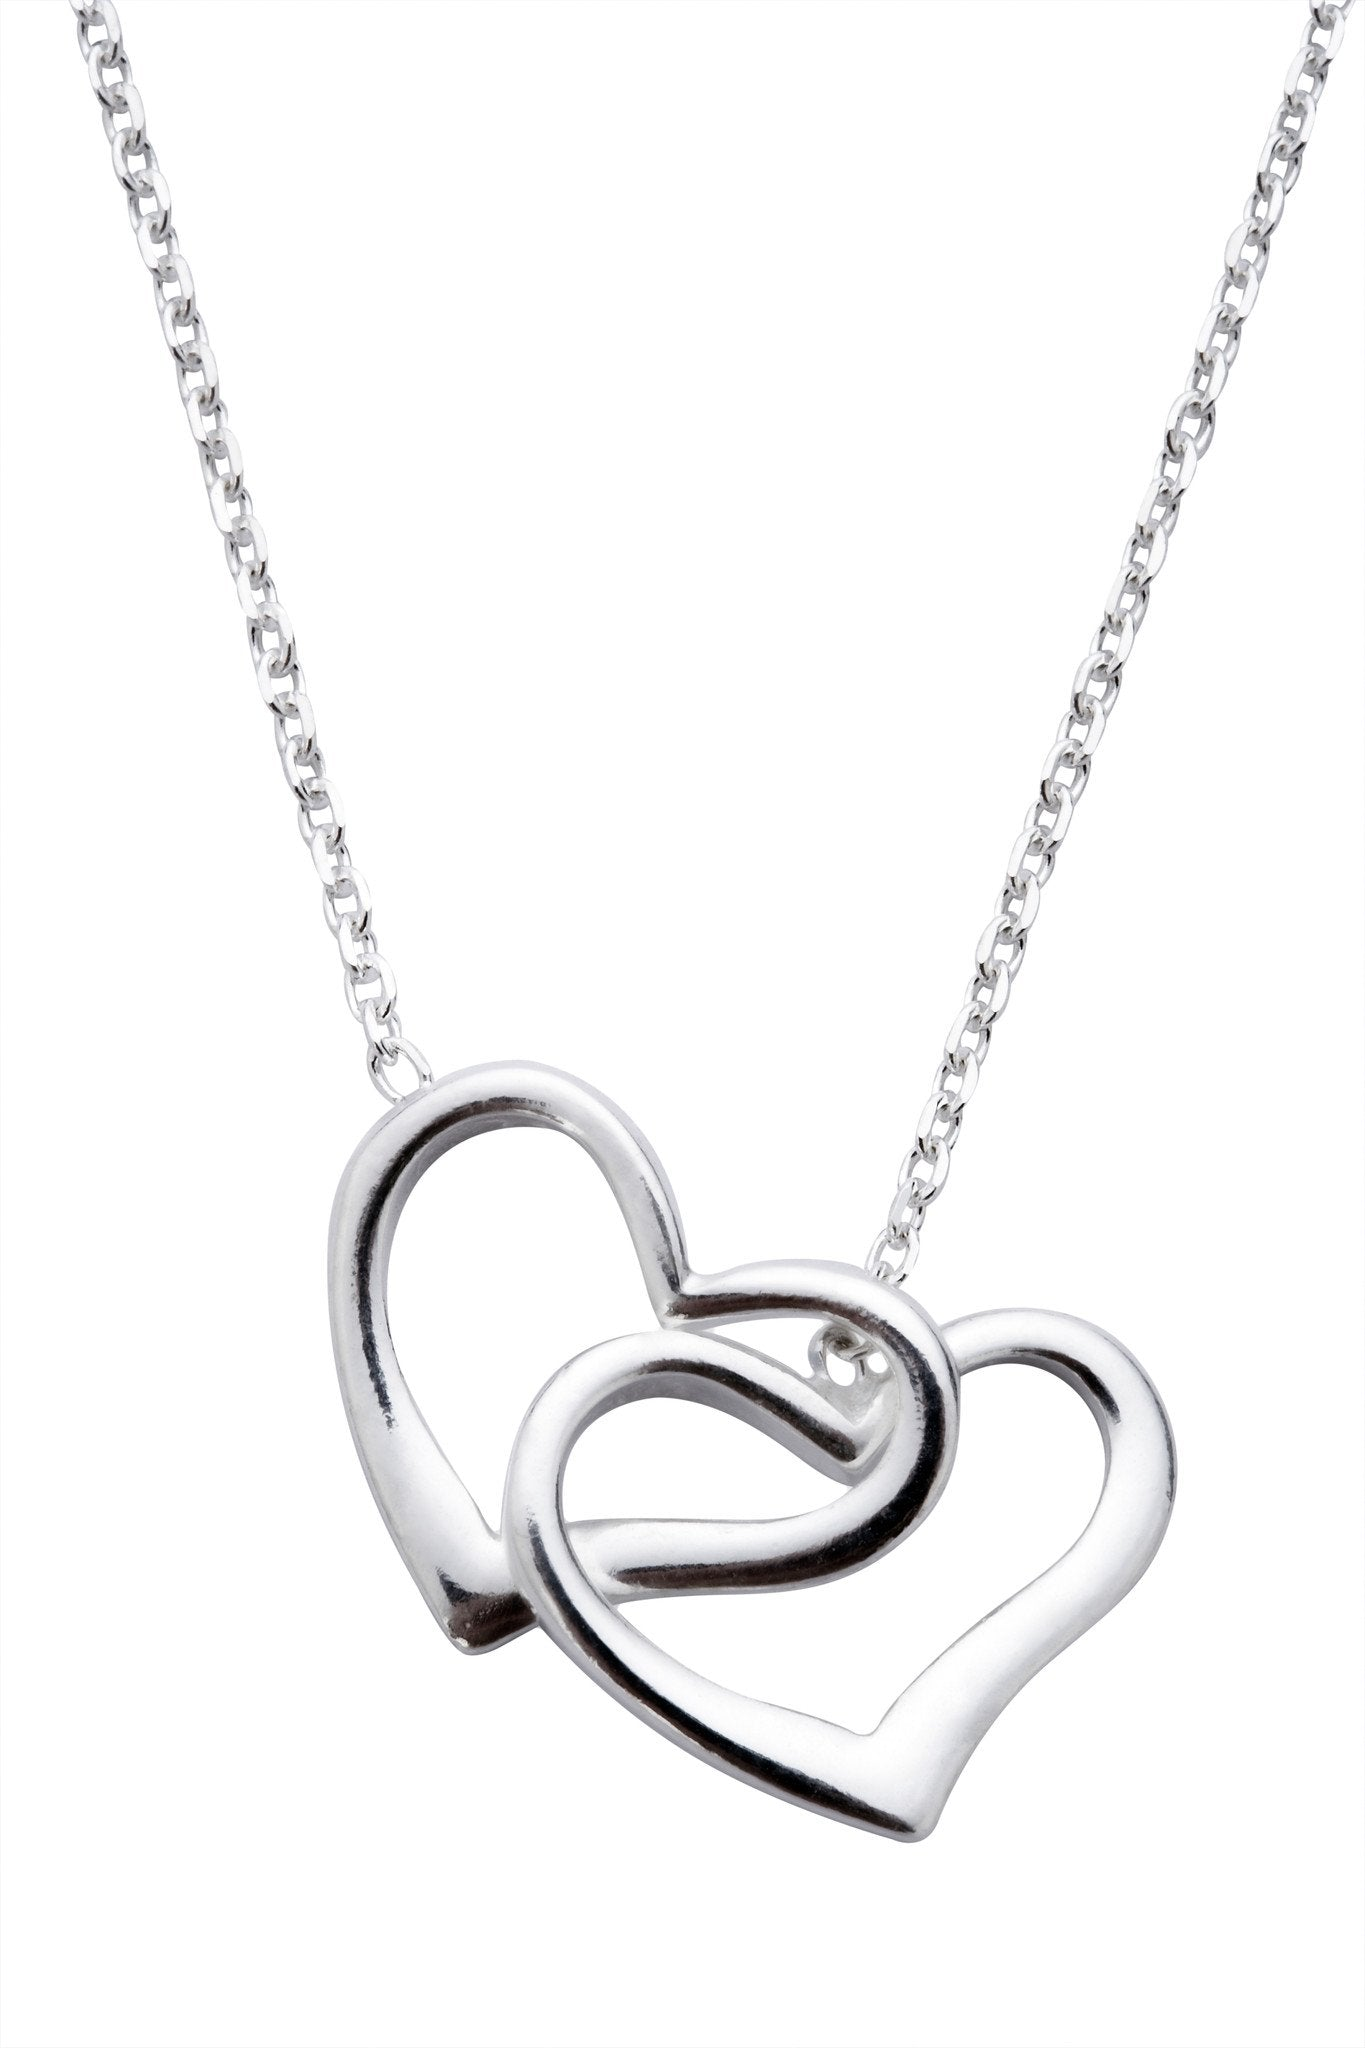 CW Sellors Necklace Double Open Heart Silver